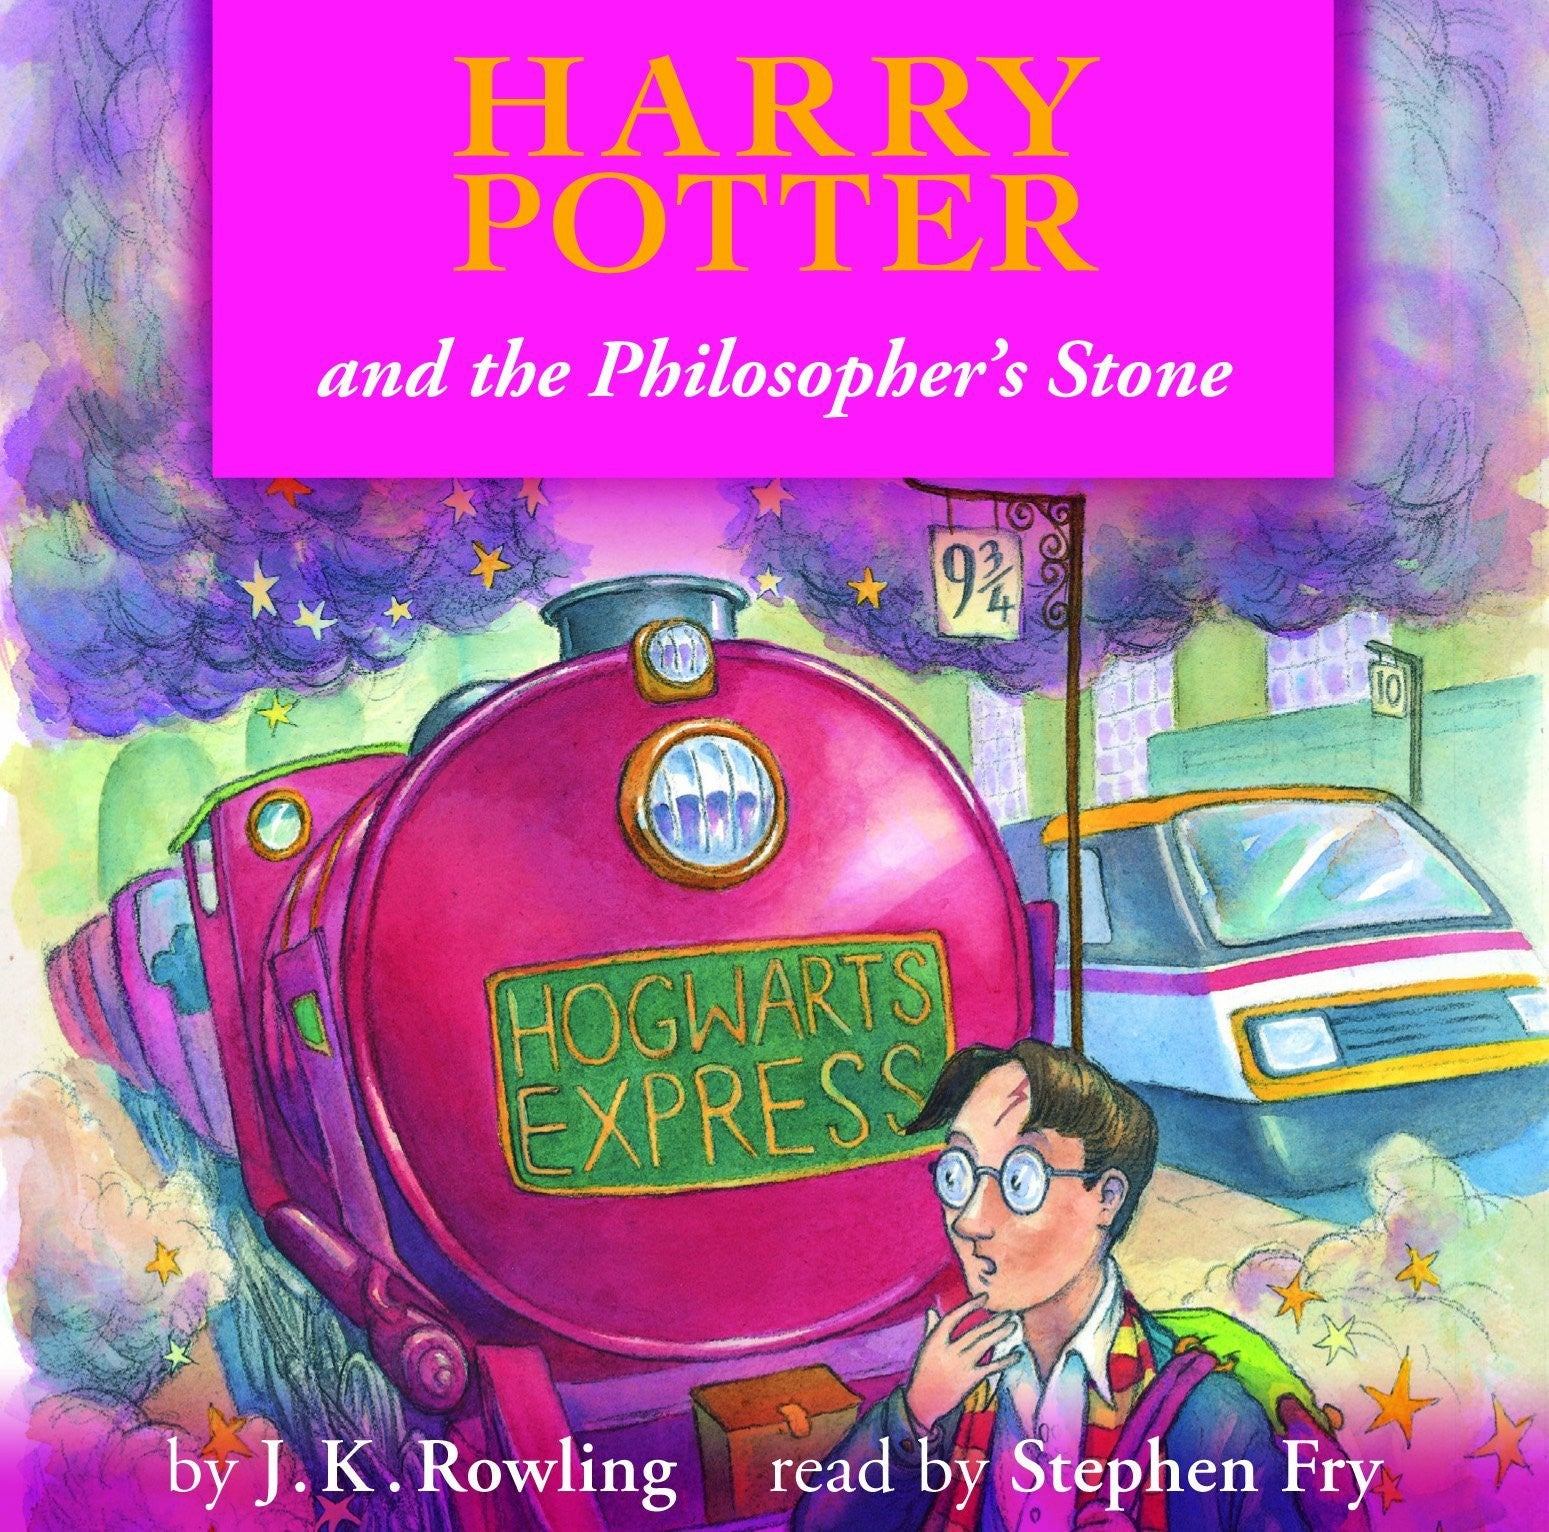 HARRY POTTER AND THE PHILOSOPHER'S STONE AUDIO BOOK 4CD VG+